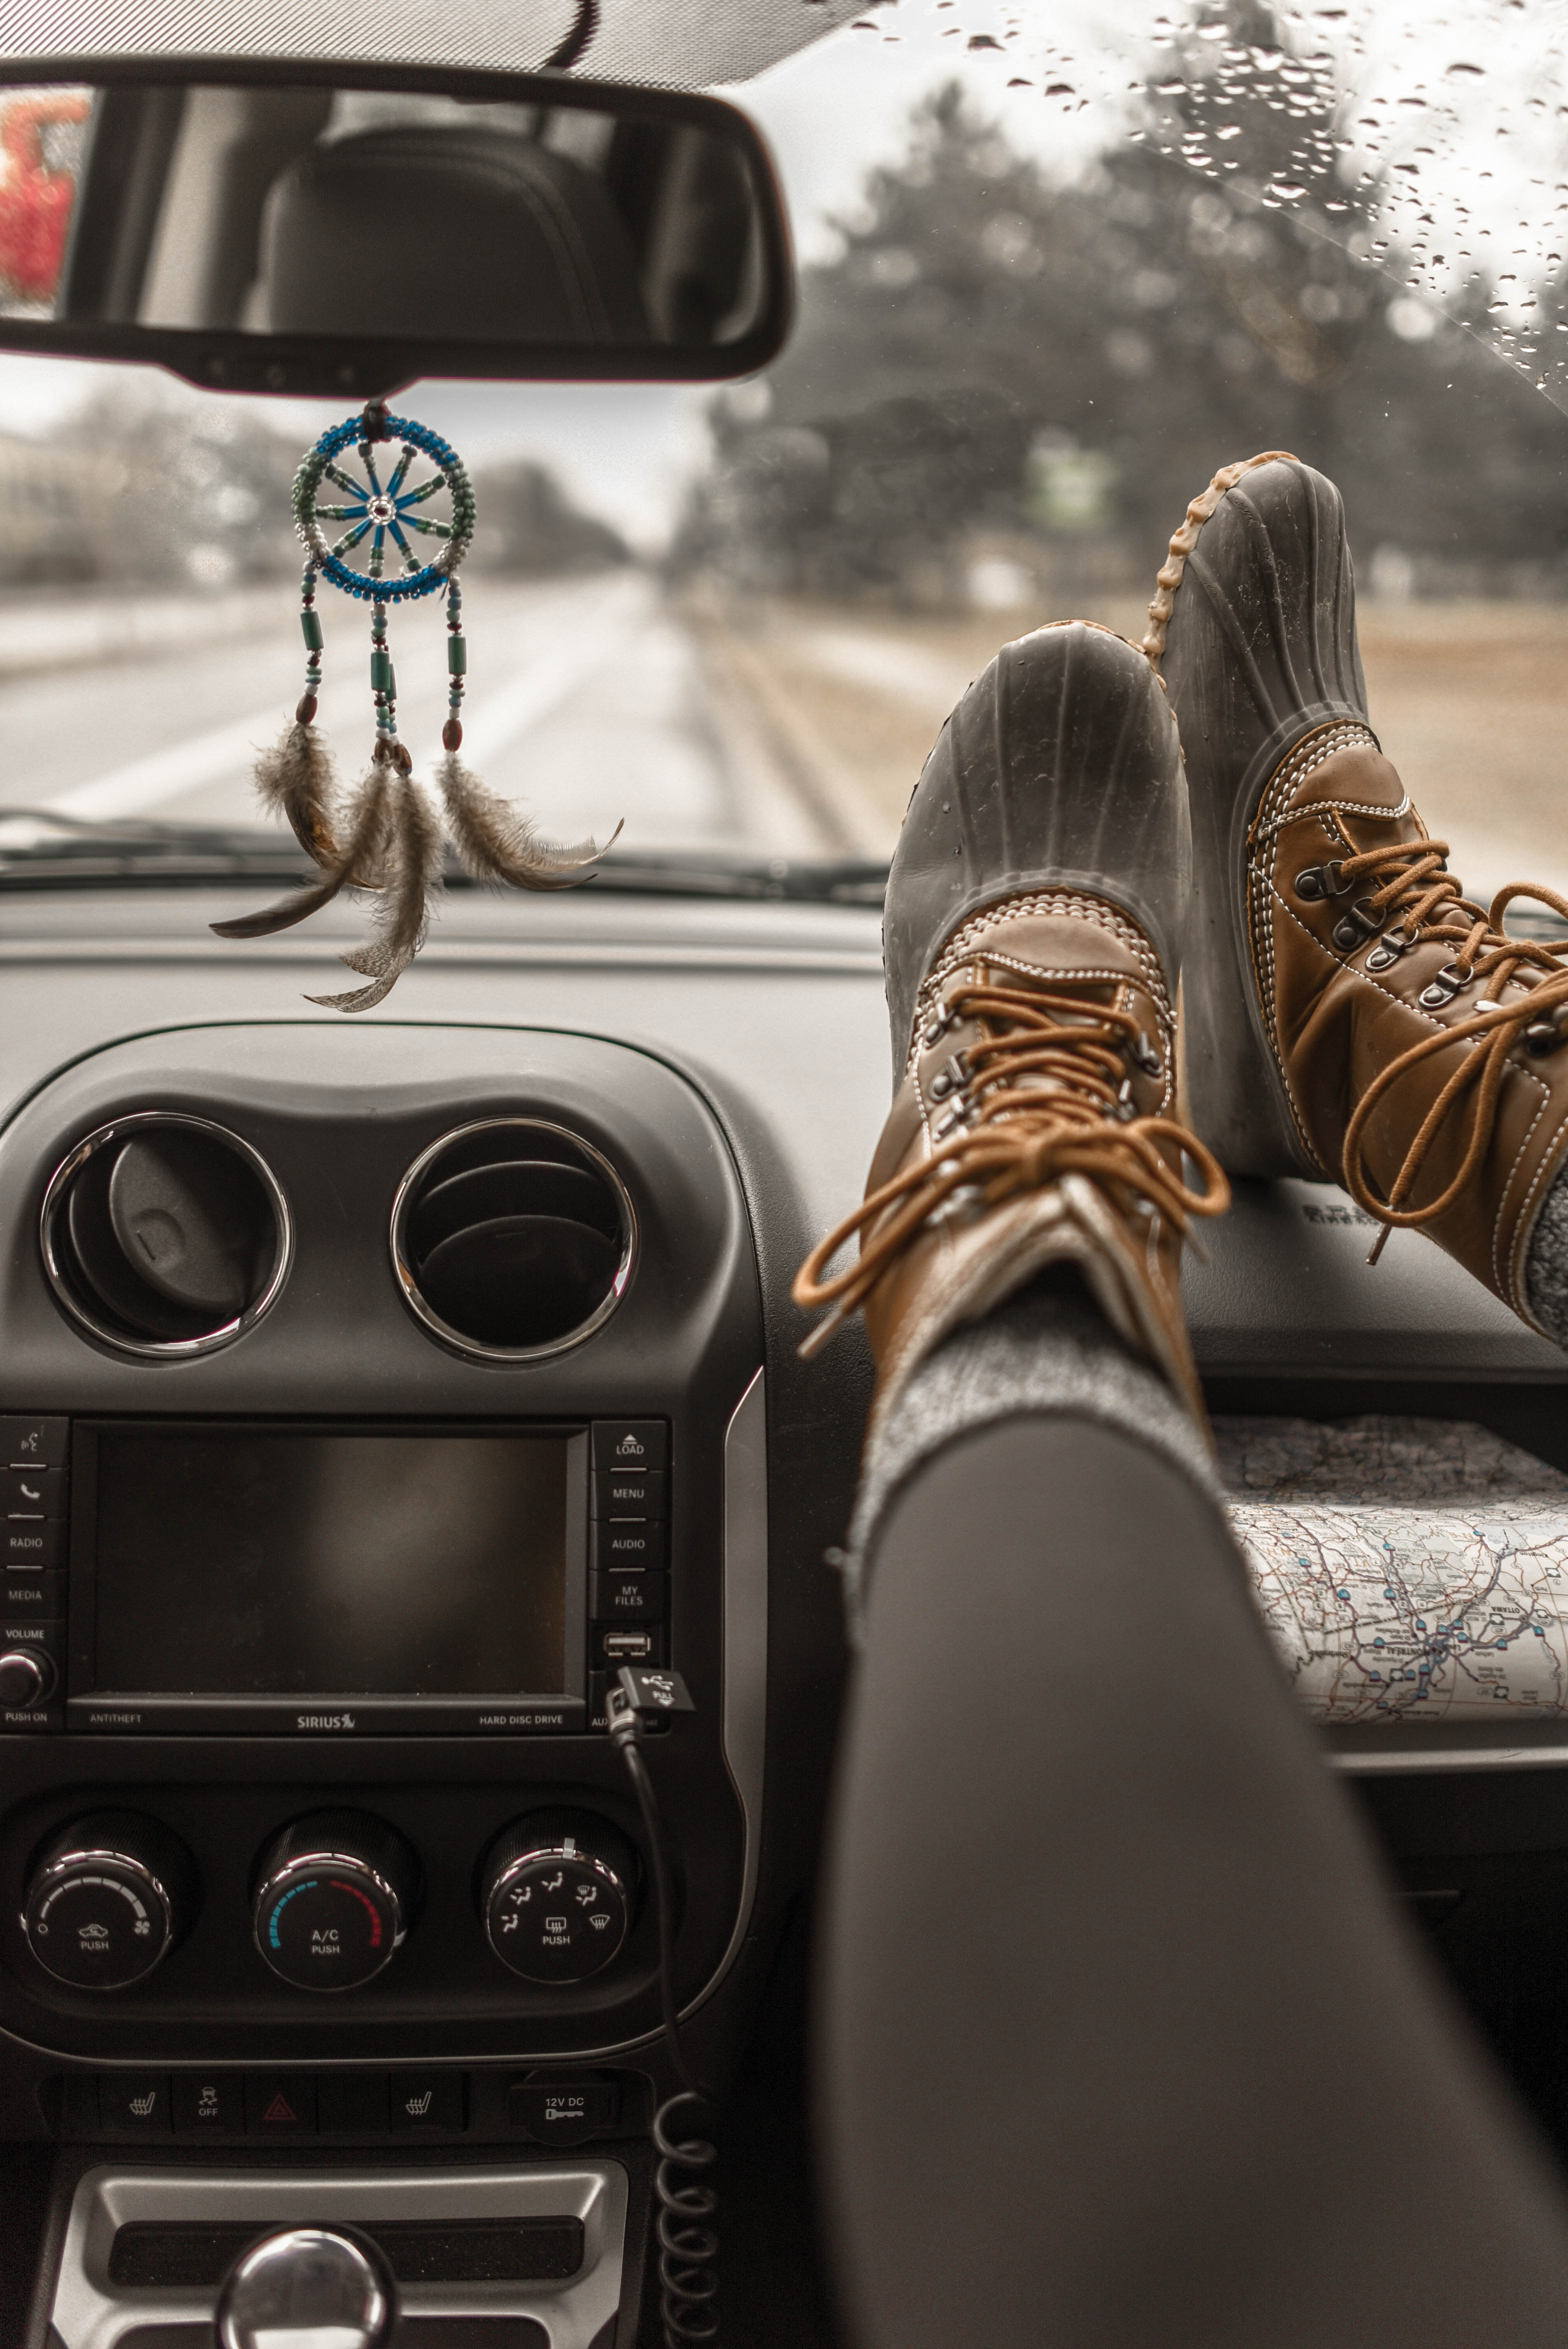 person wearing duck boots putting his boots on vehicle glove compartment